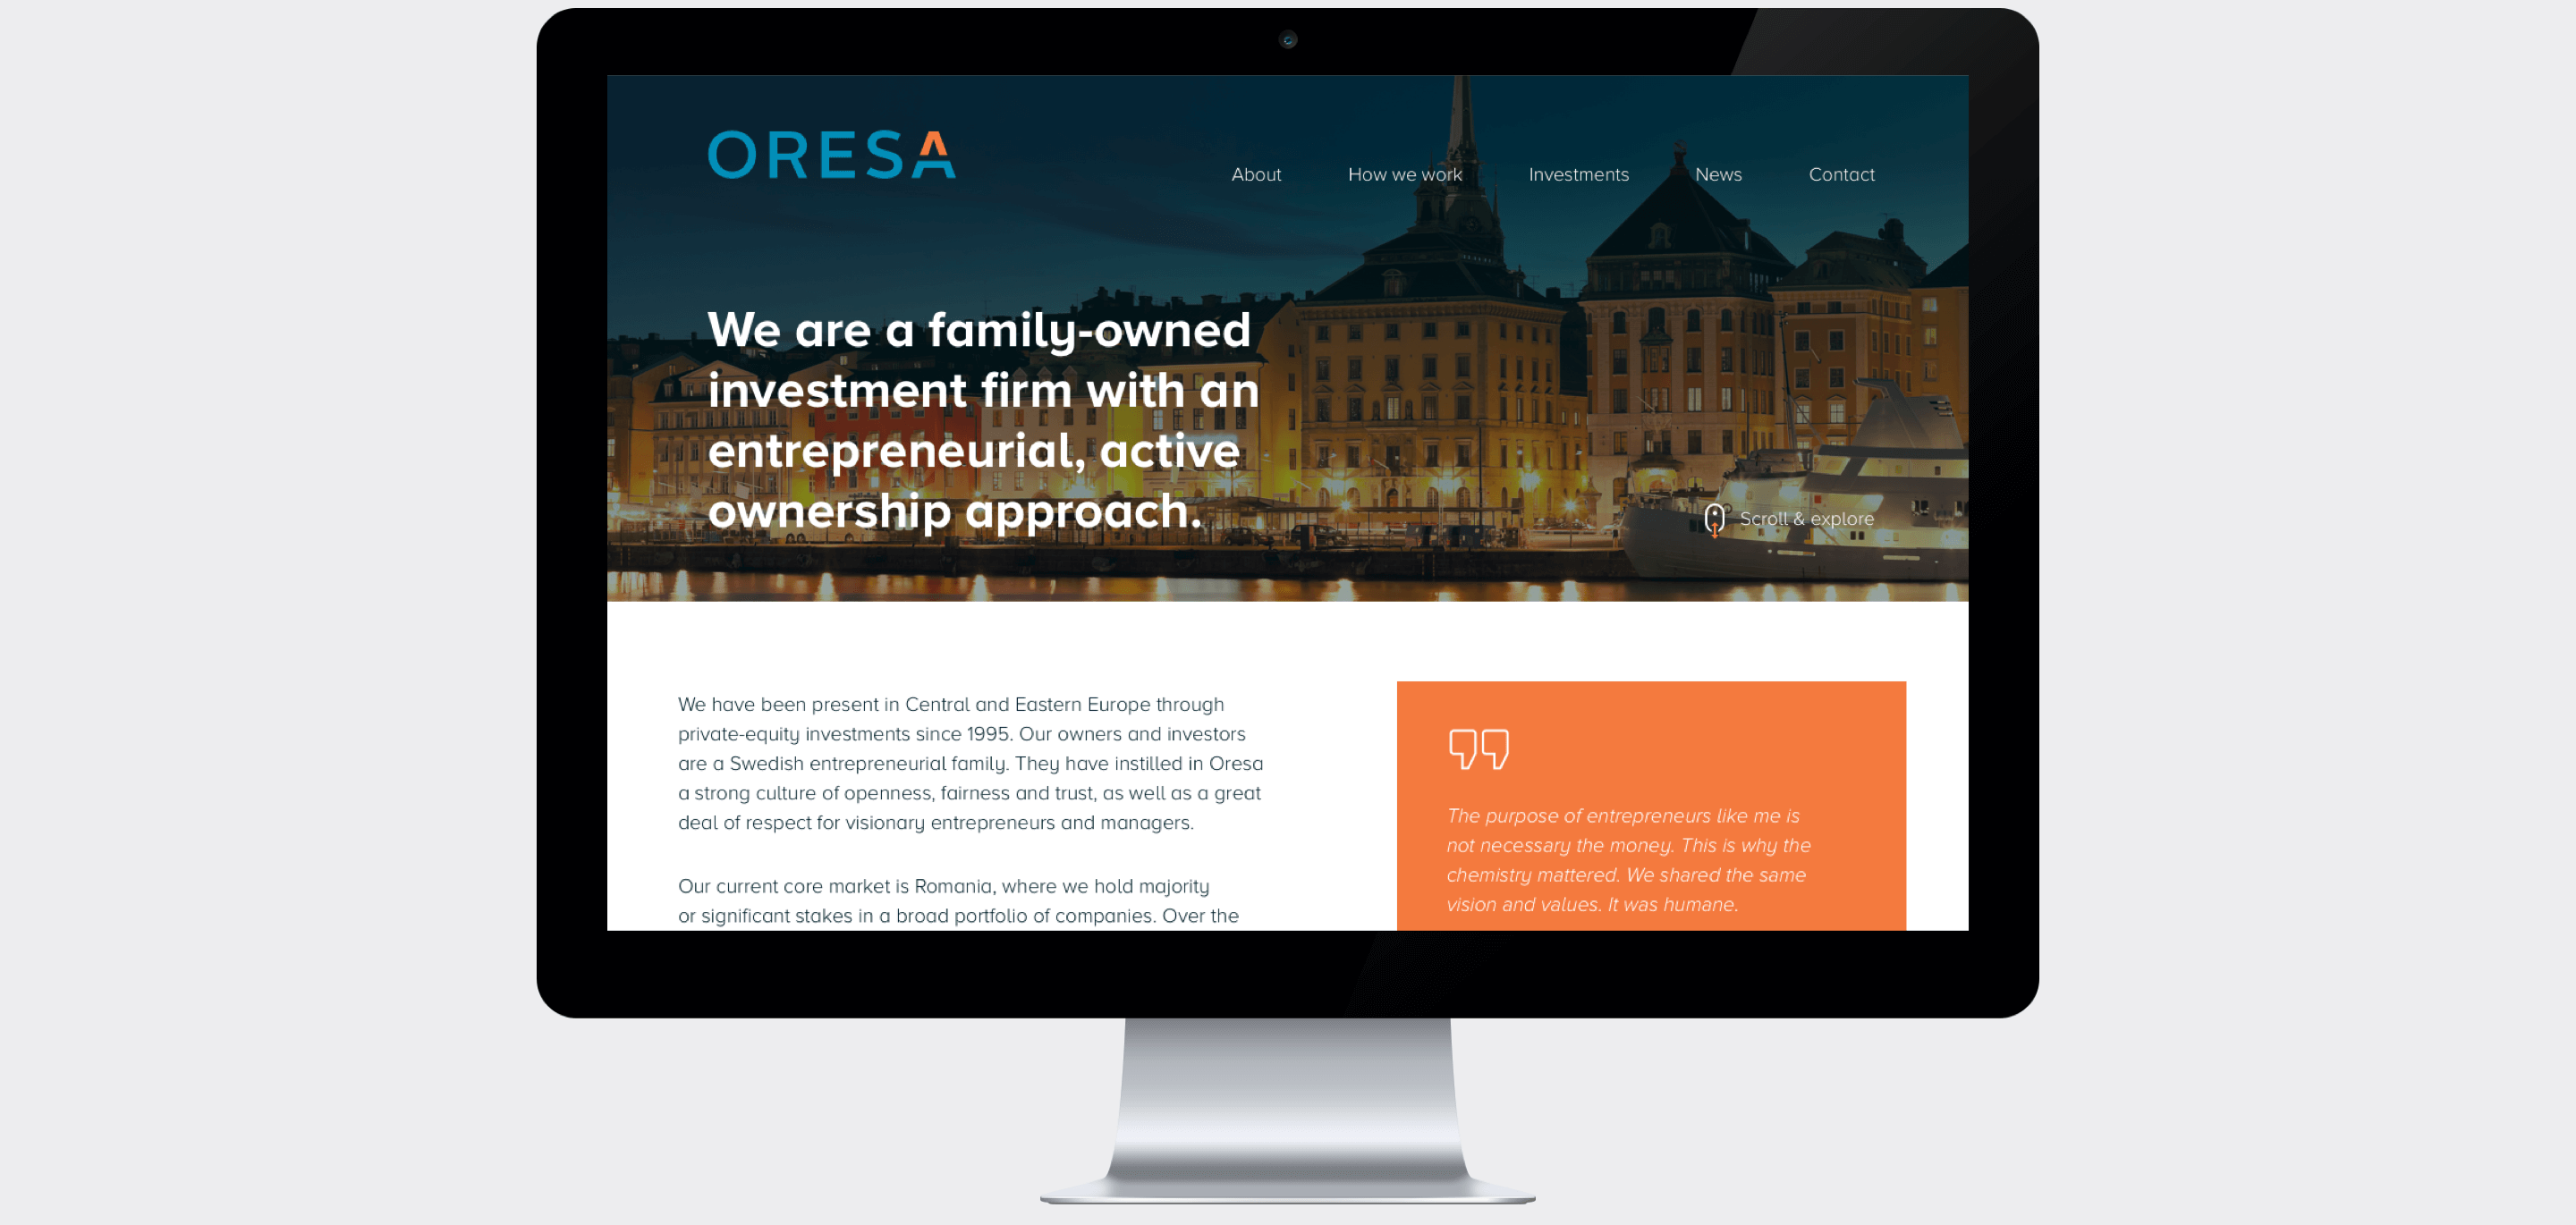 Oresa website